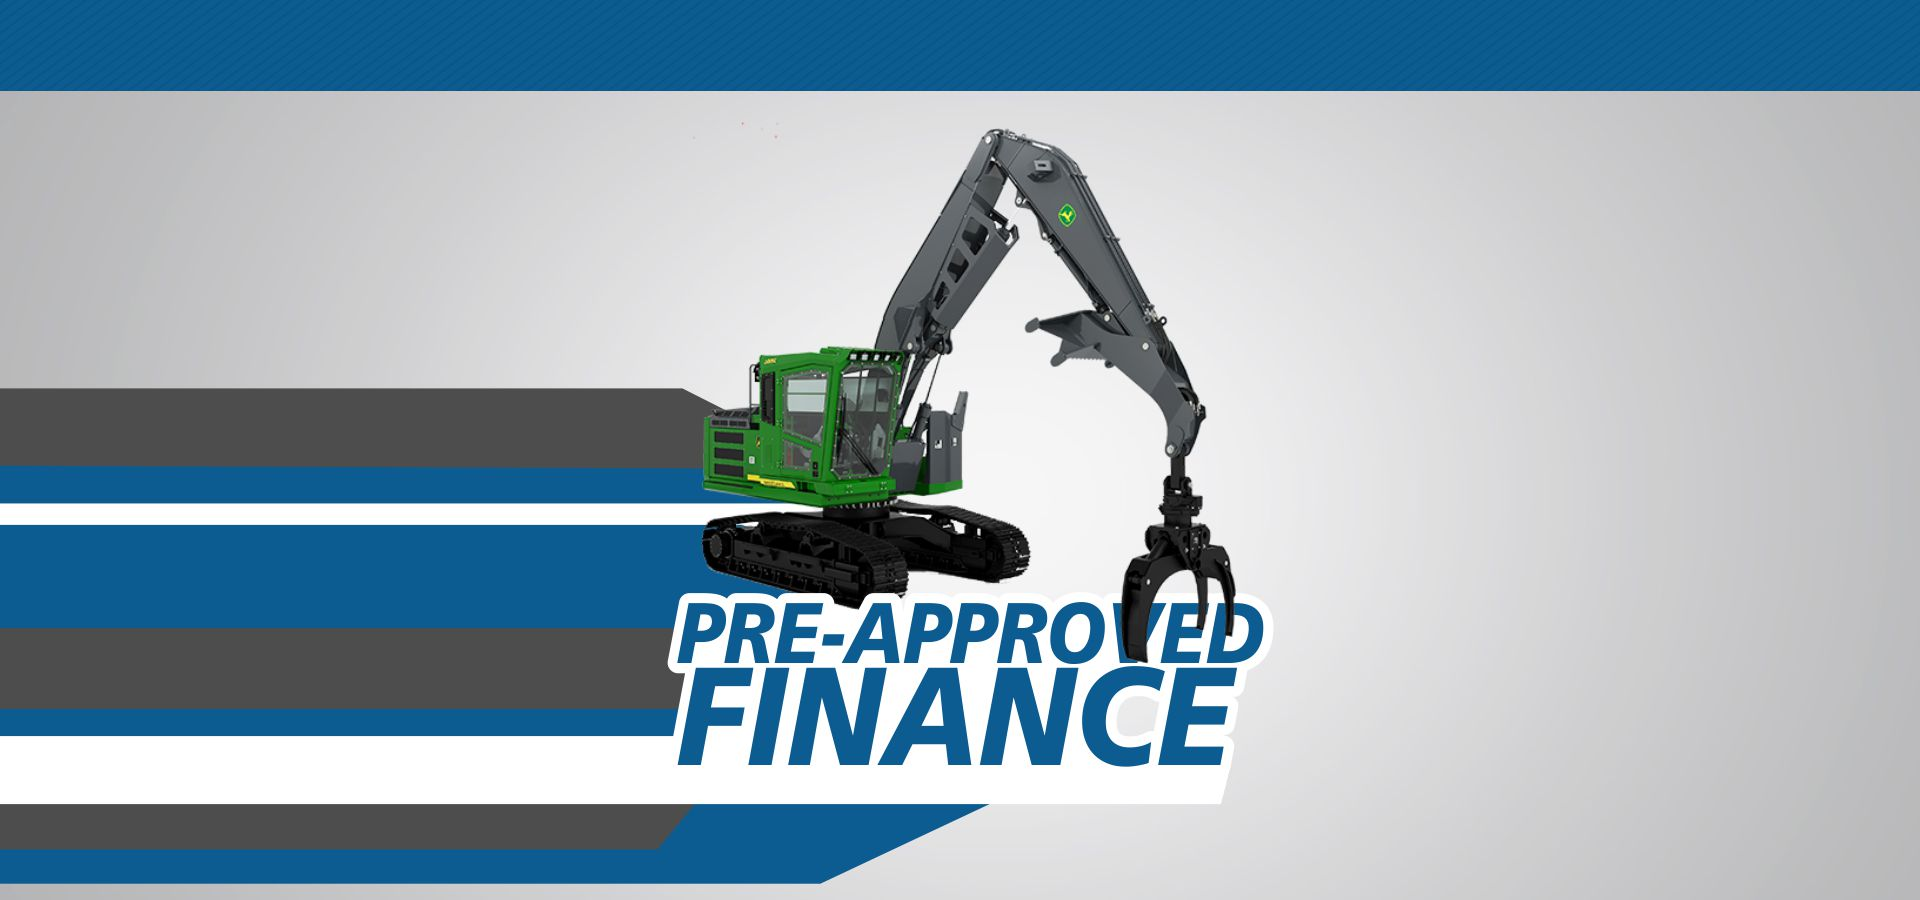 Pre-approved finance